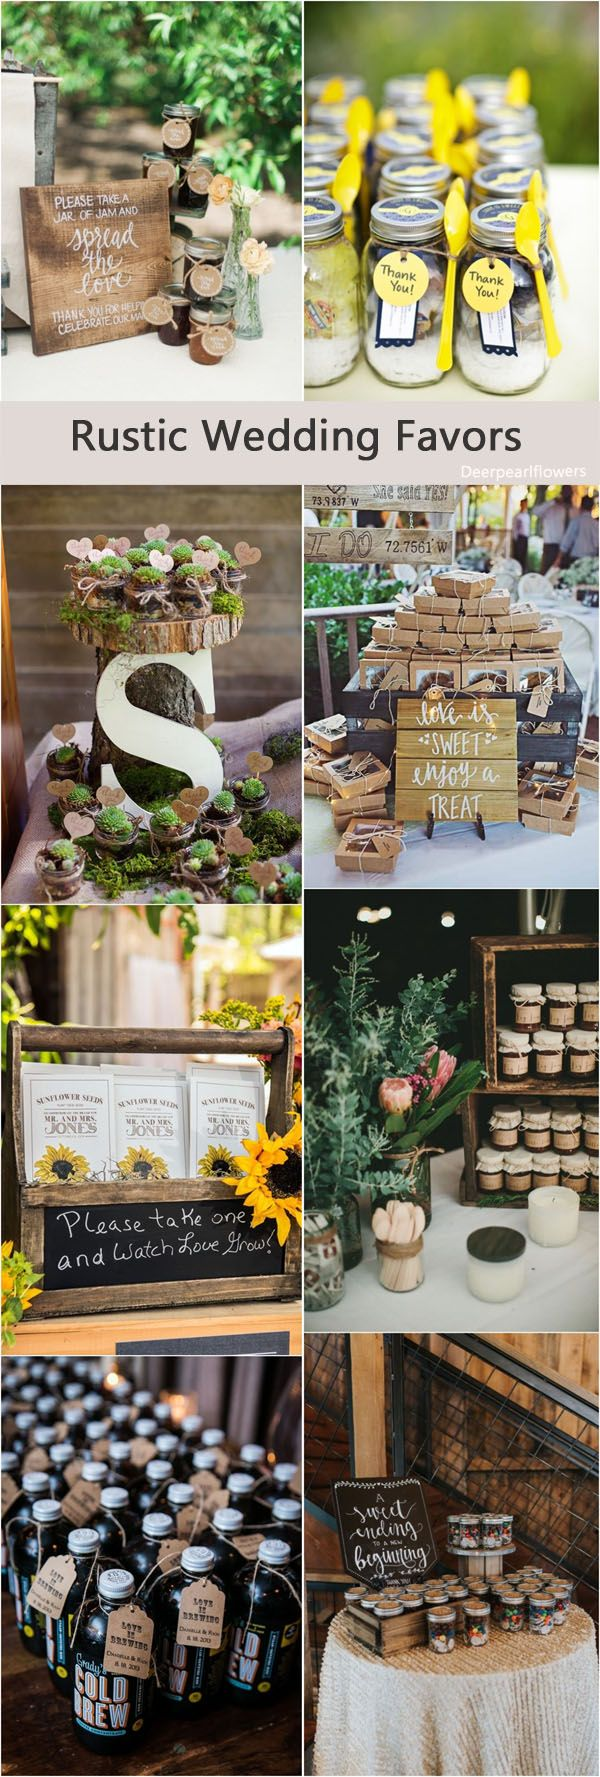 70 easy rustic wedding ideas that you could try in 2017   rustic